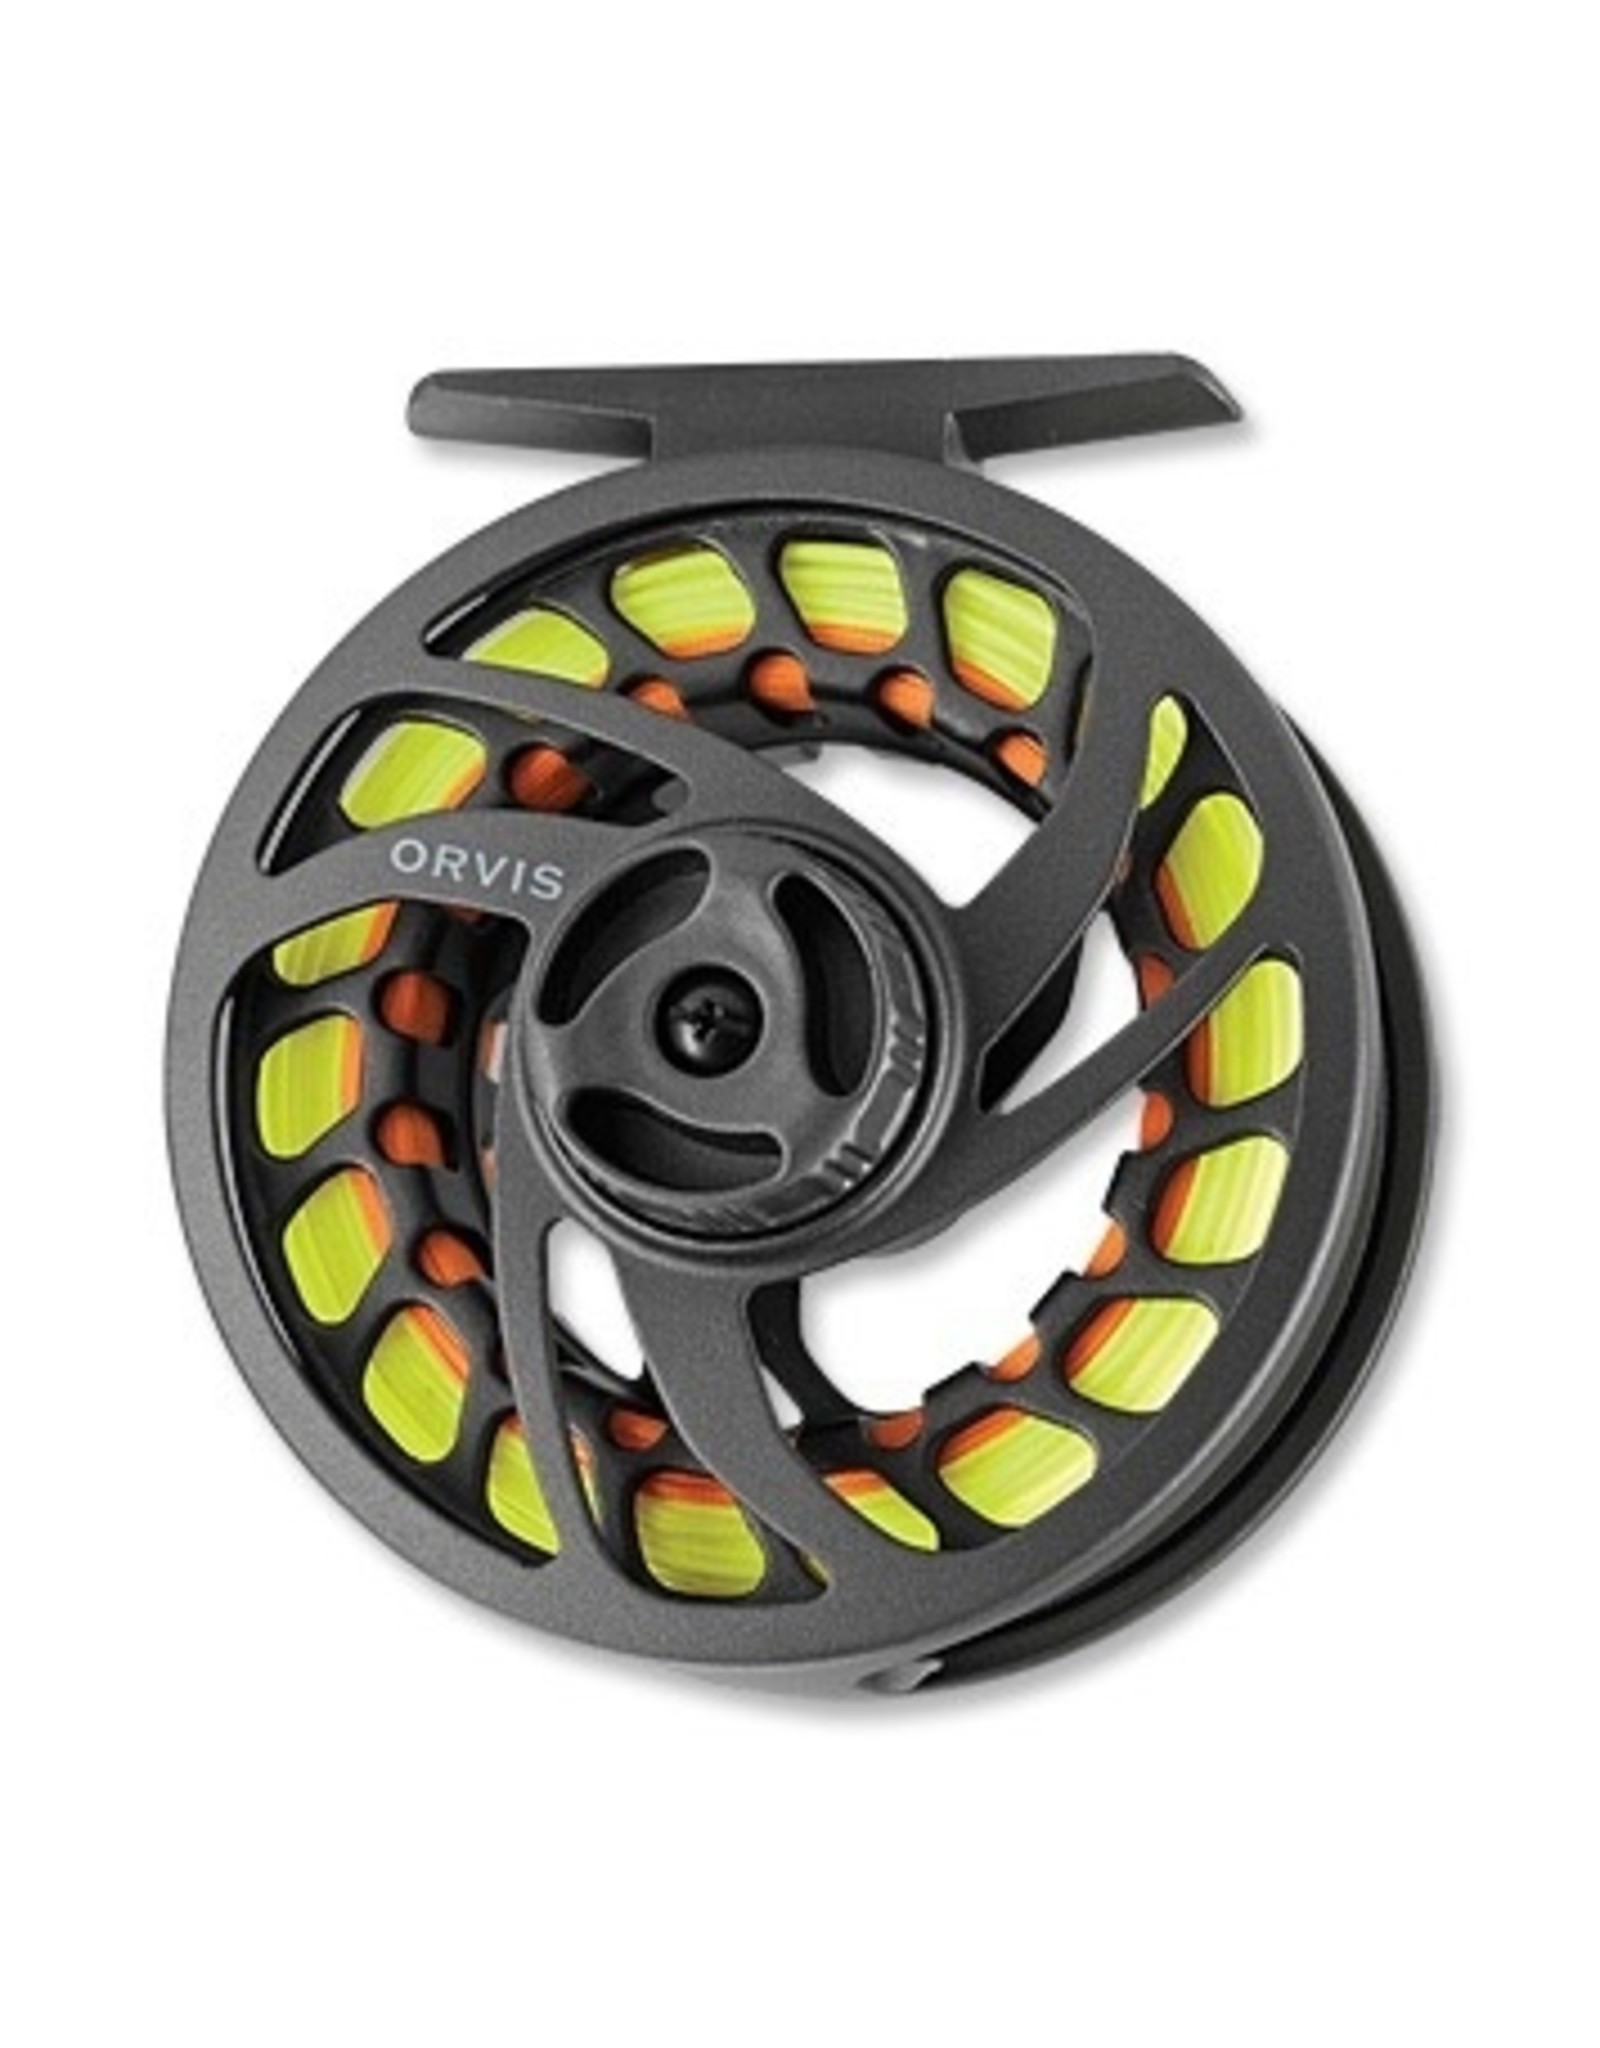 Orvis NEW Orvis Clearwater Large Arbor Reel II